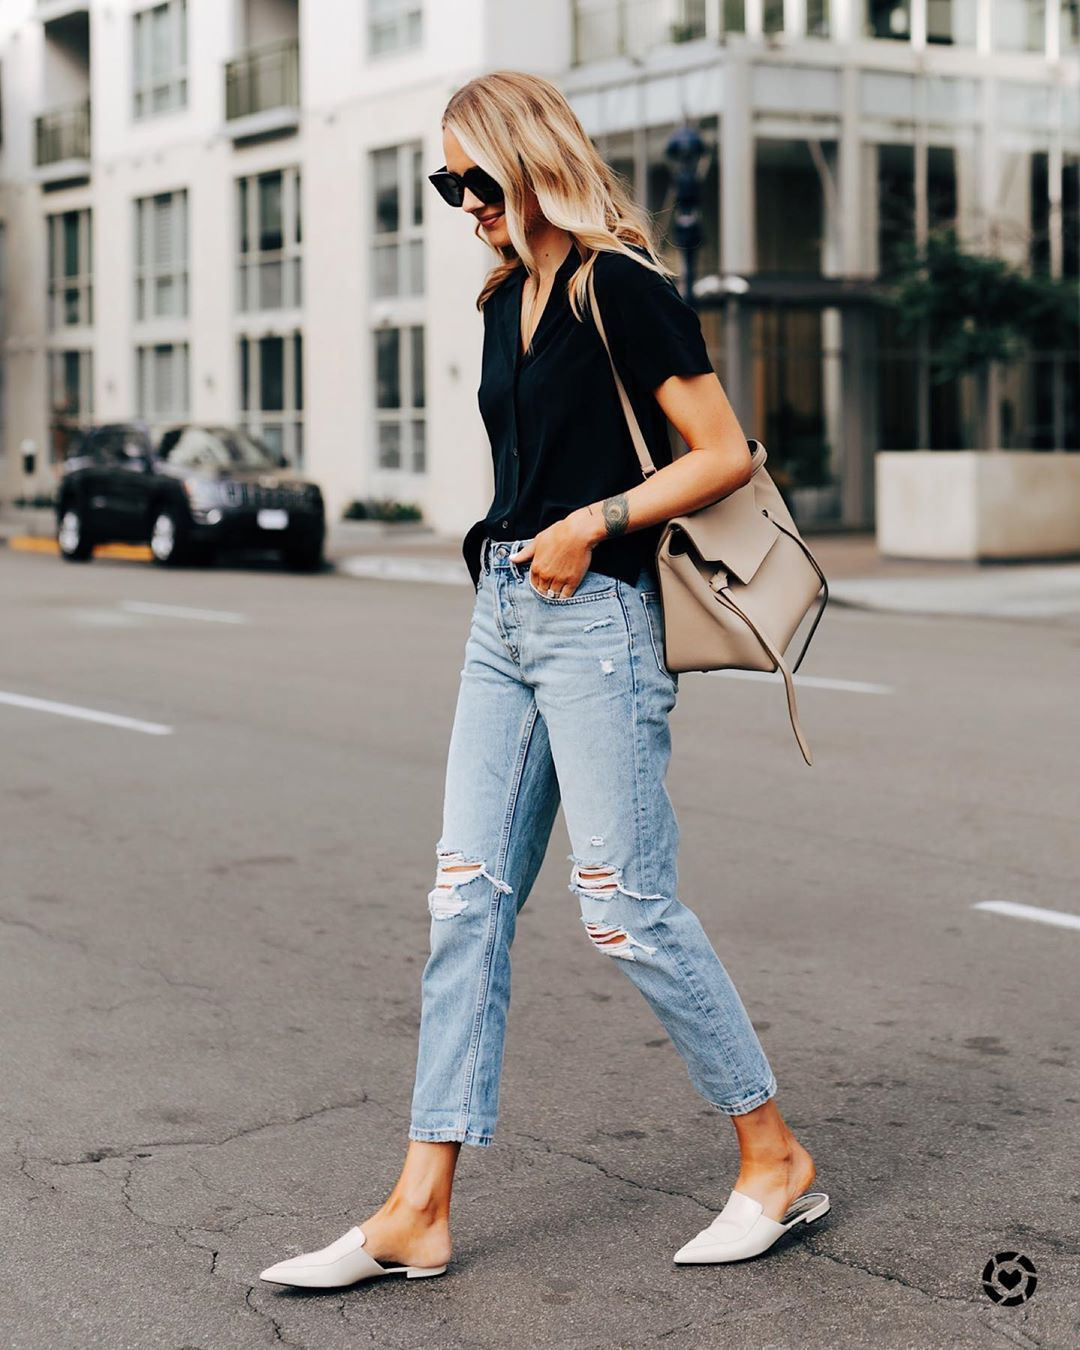 jeans ripped jeans mules black shirt bag streetstyle